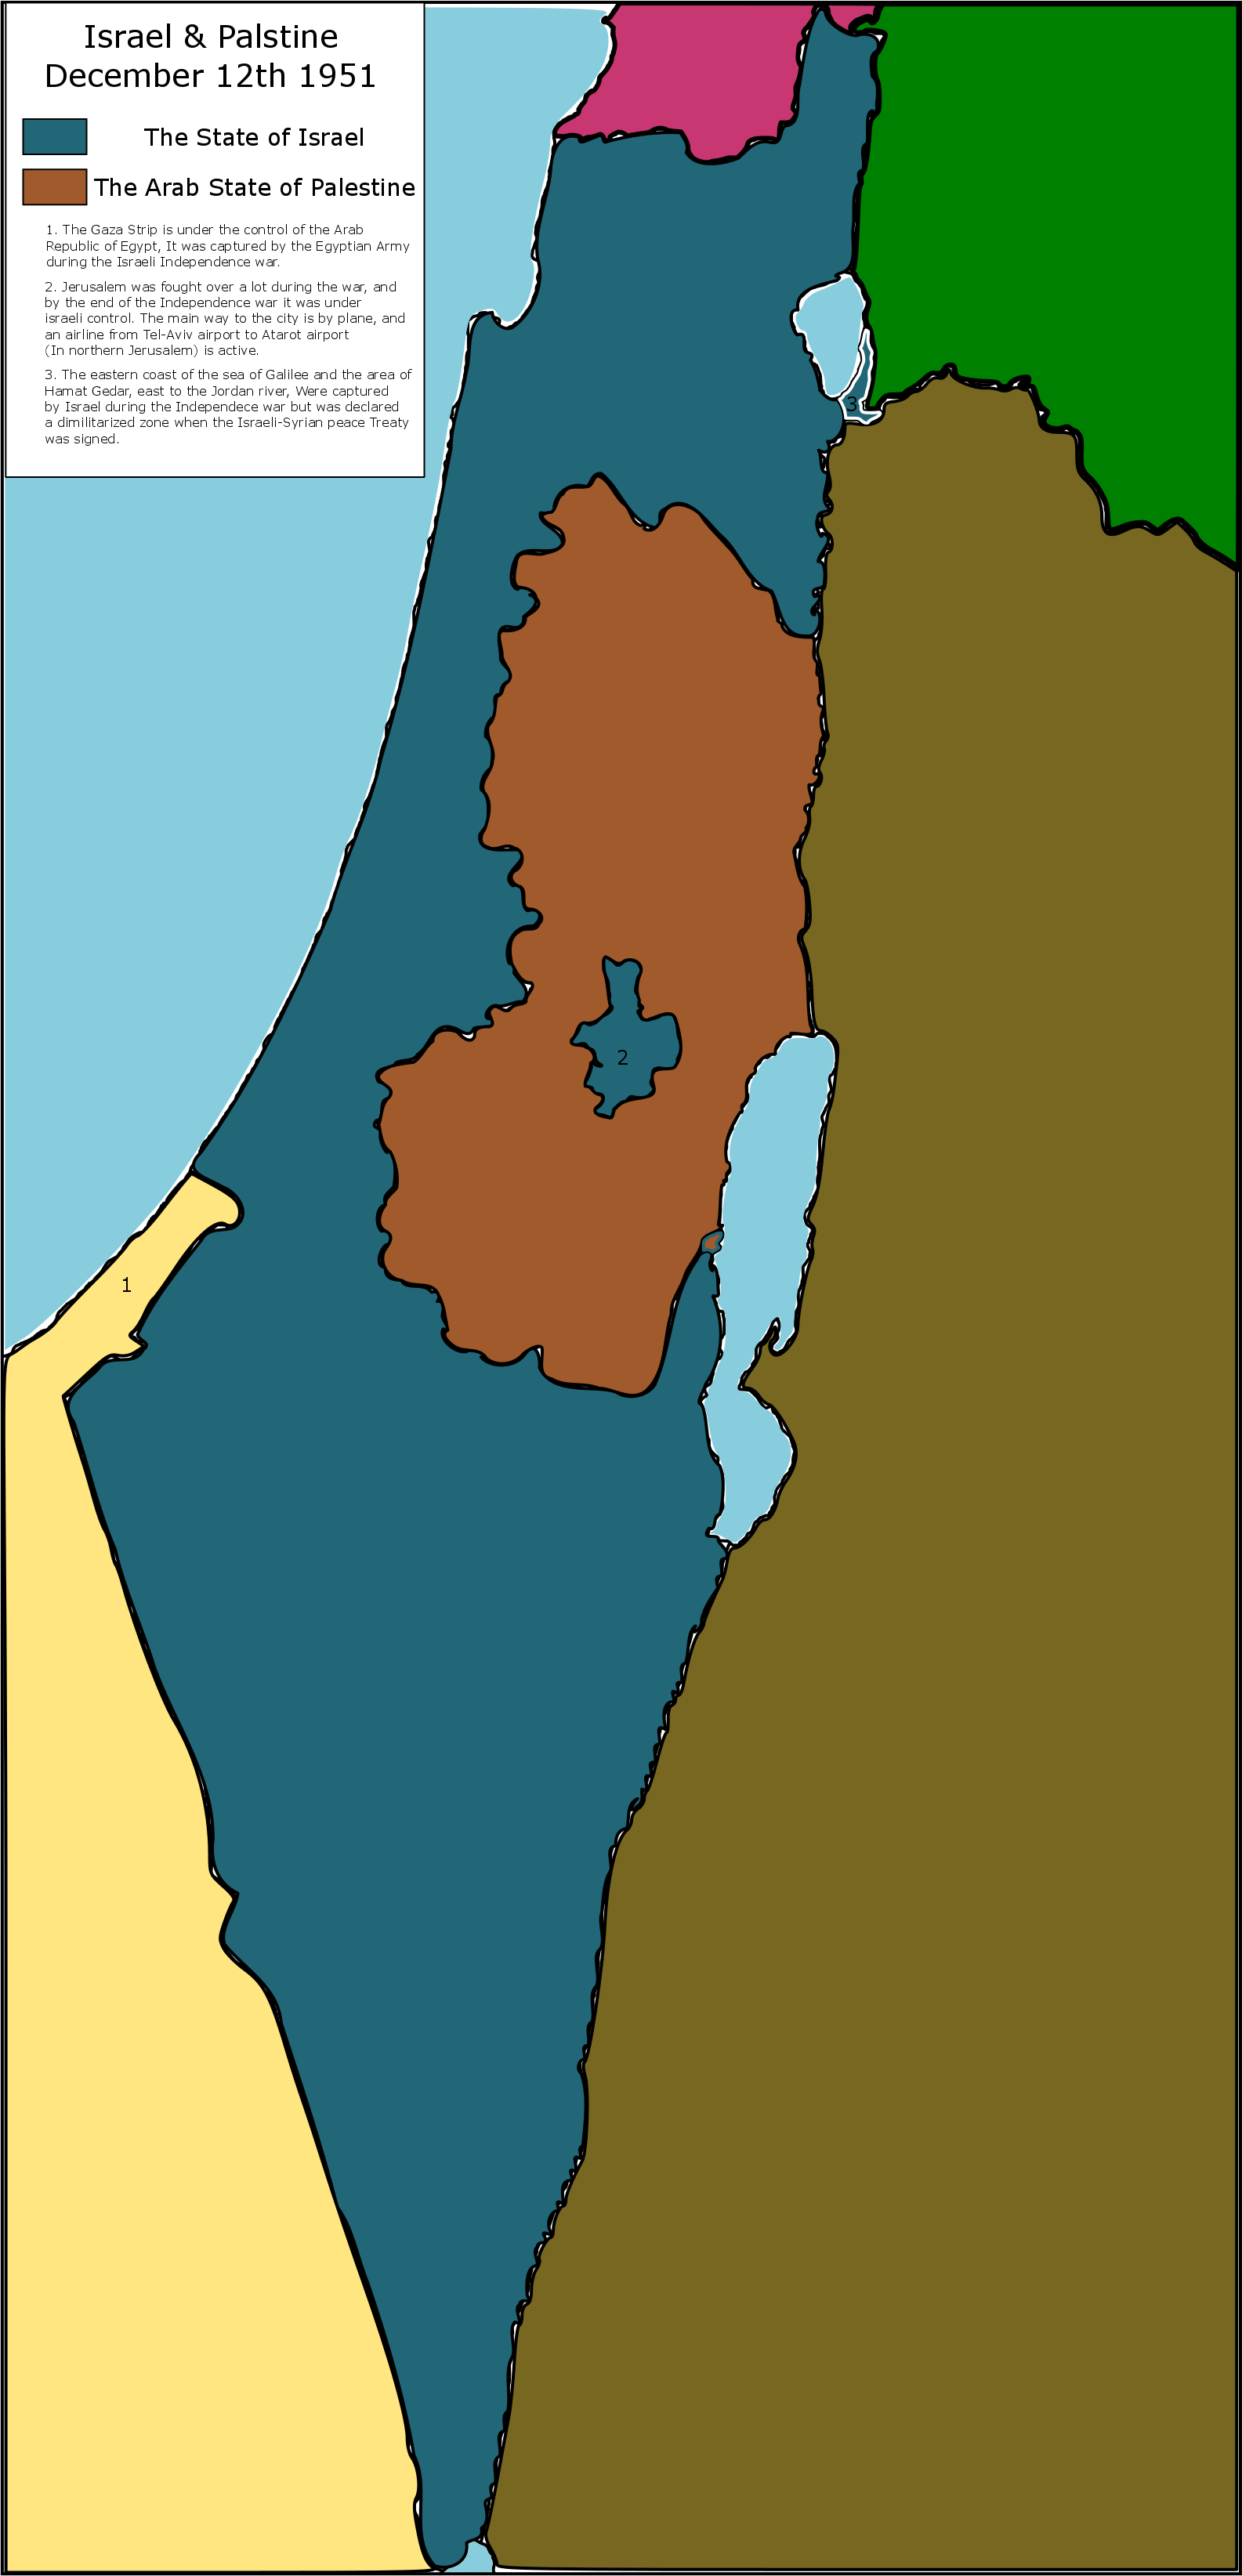 Map thread xiv page 457 alternate history discussion later that year on december 10th a small no strings attached peace treaty was signed between israel and syria gumiabroncs Choice Image